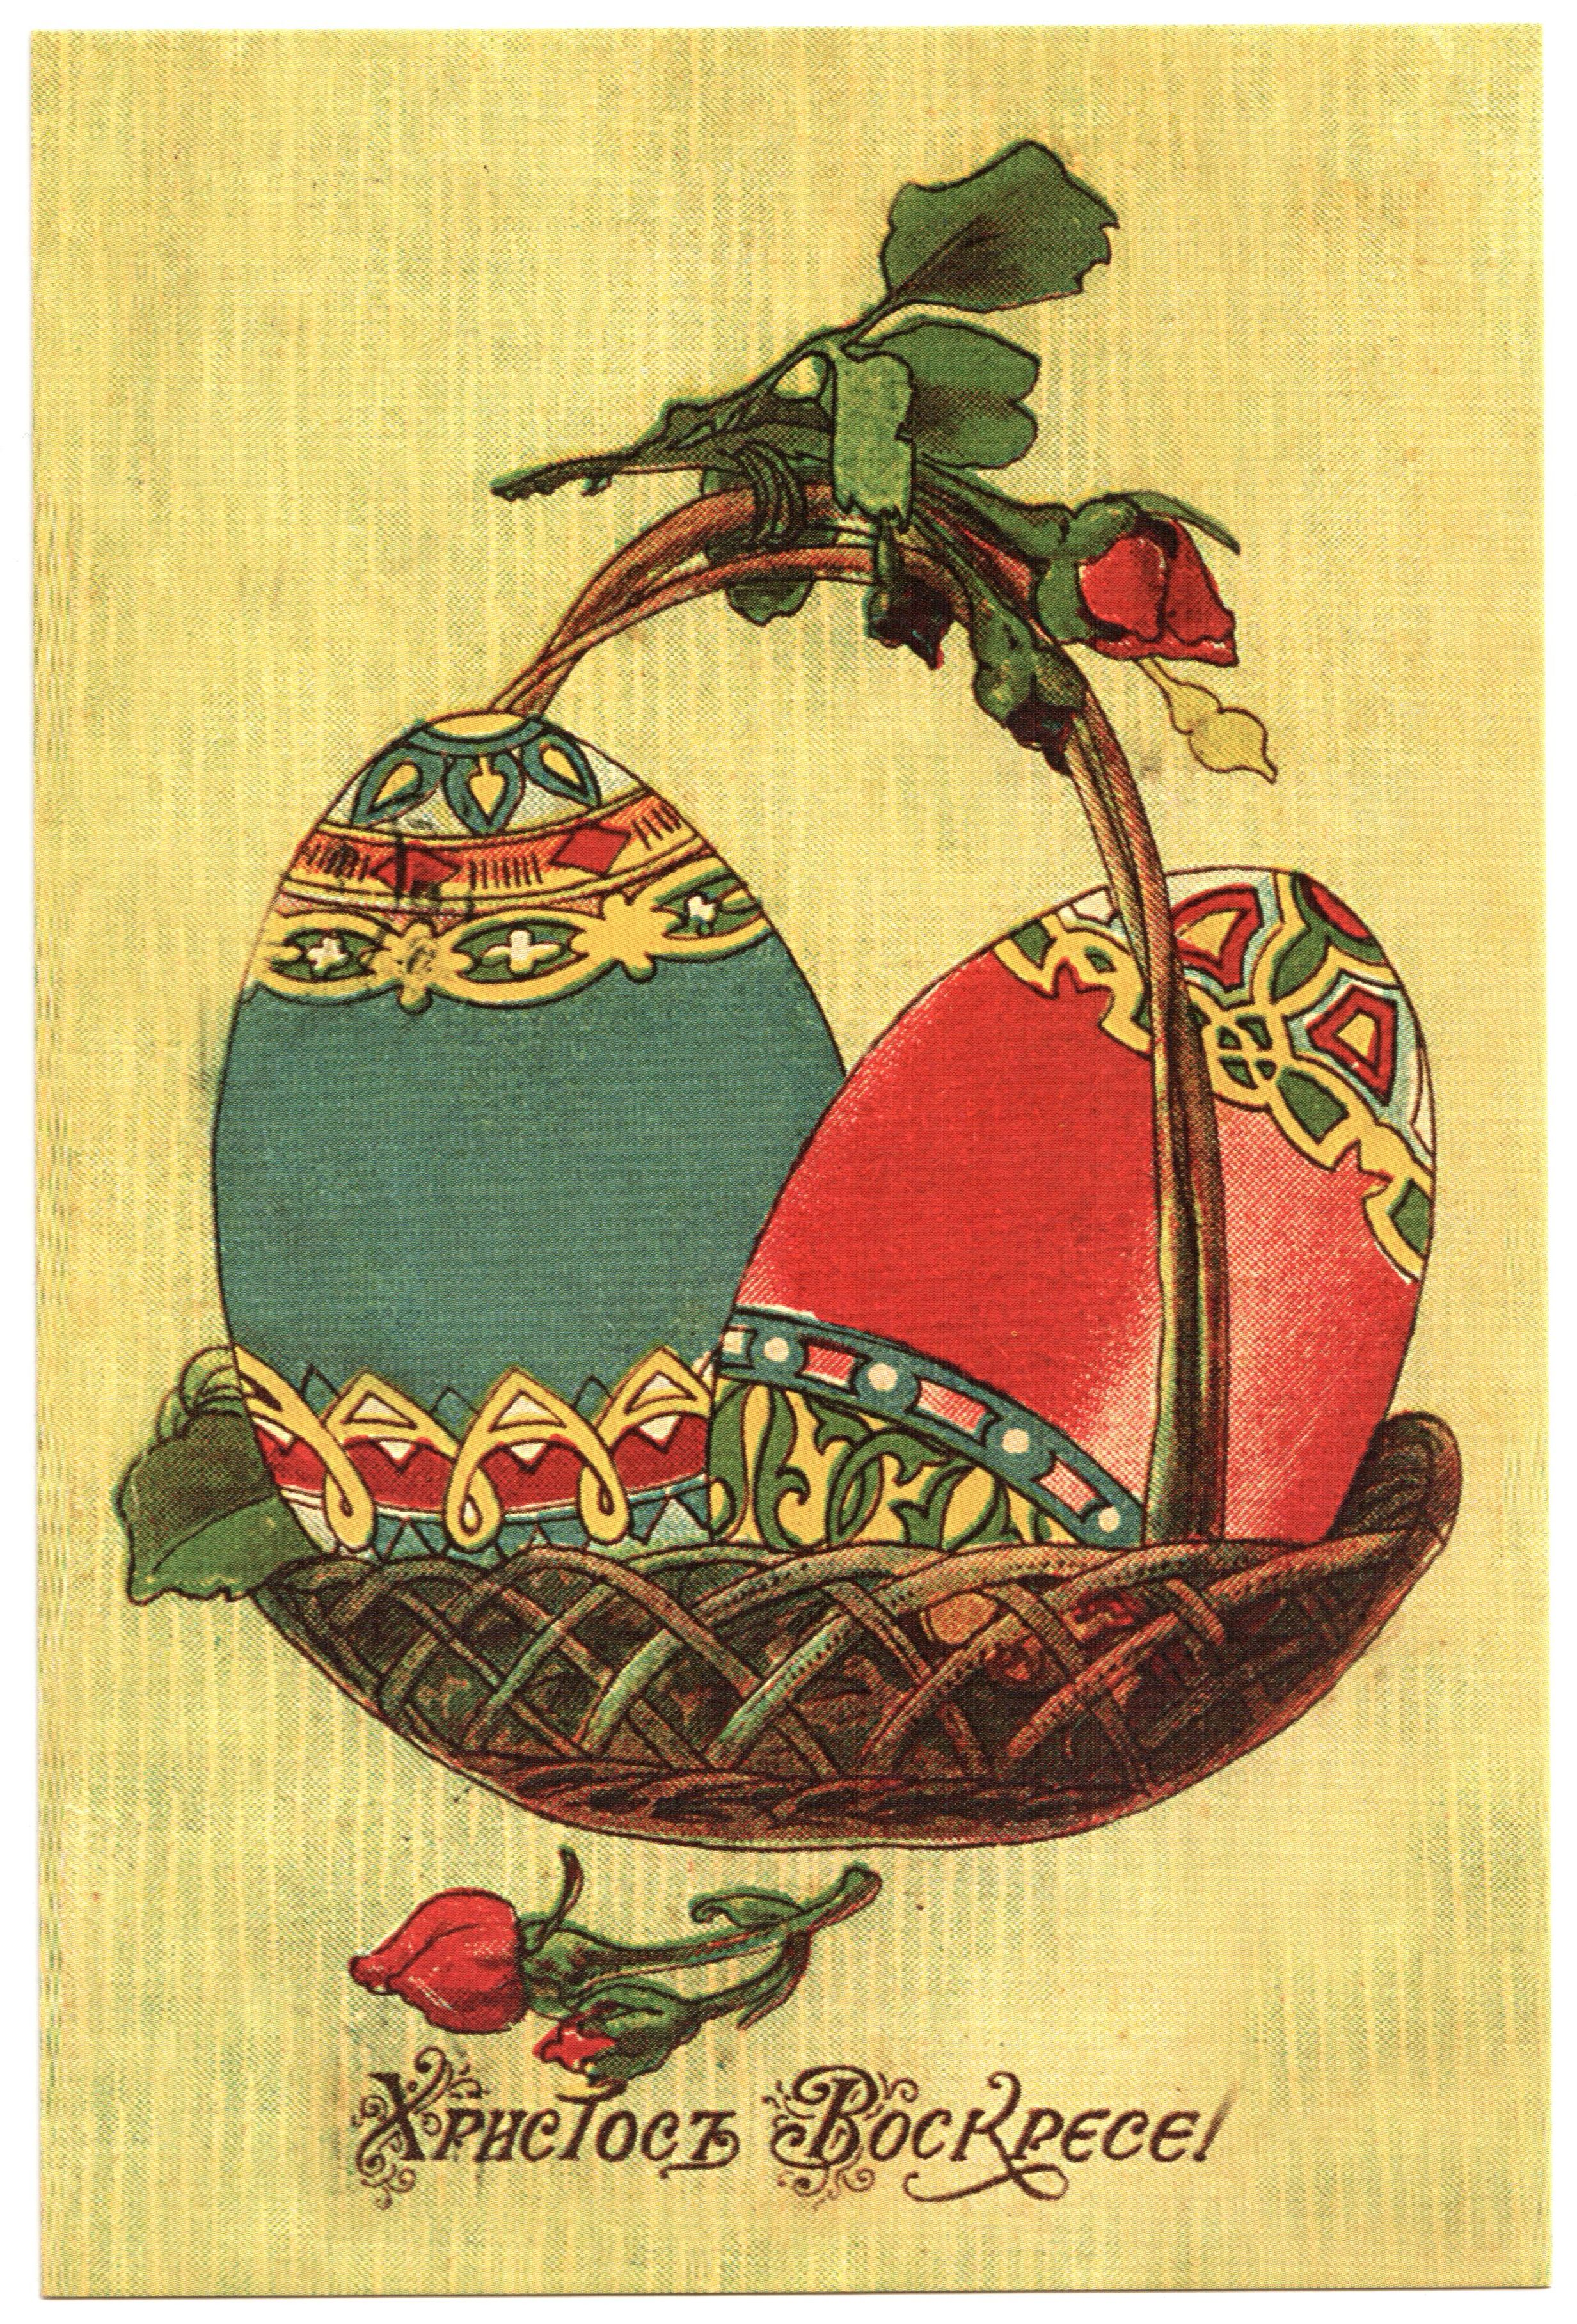 File:Hristos Voskrese, Russian Empire Postcard.jpg ...: http://commons.wikimedia.org/wiki/File:Hristos_Voskrese,_Russian_Empire_Postcard.jpg